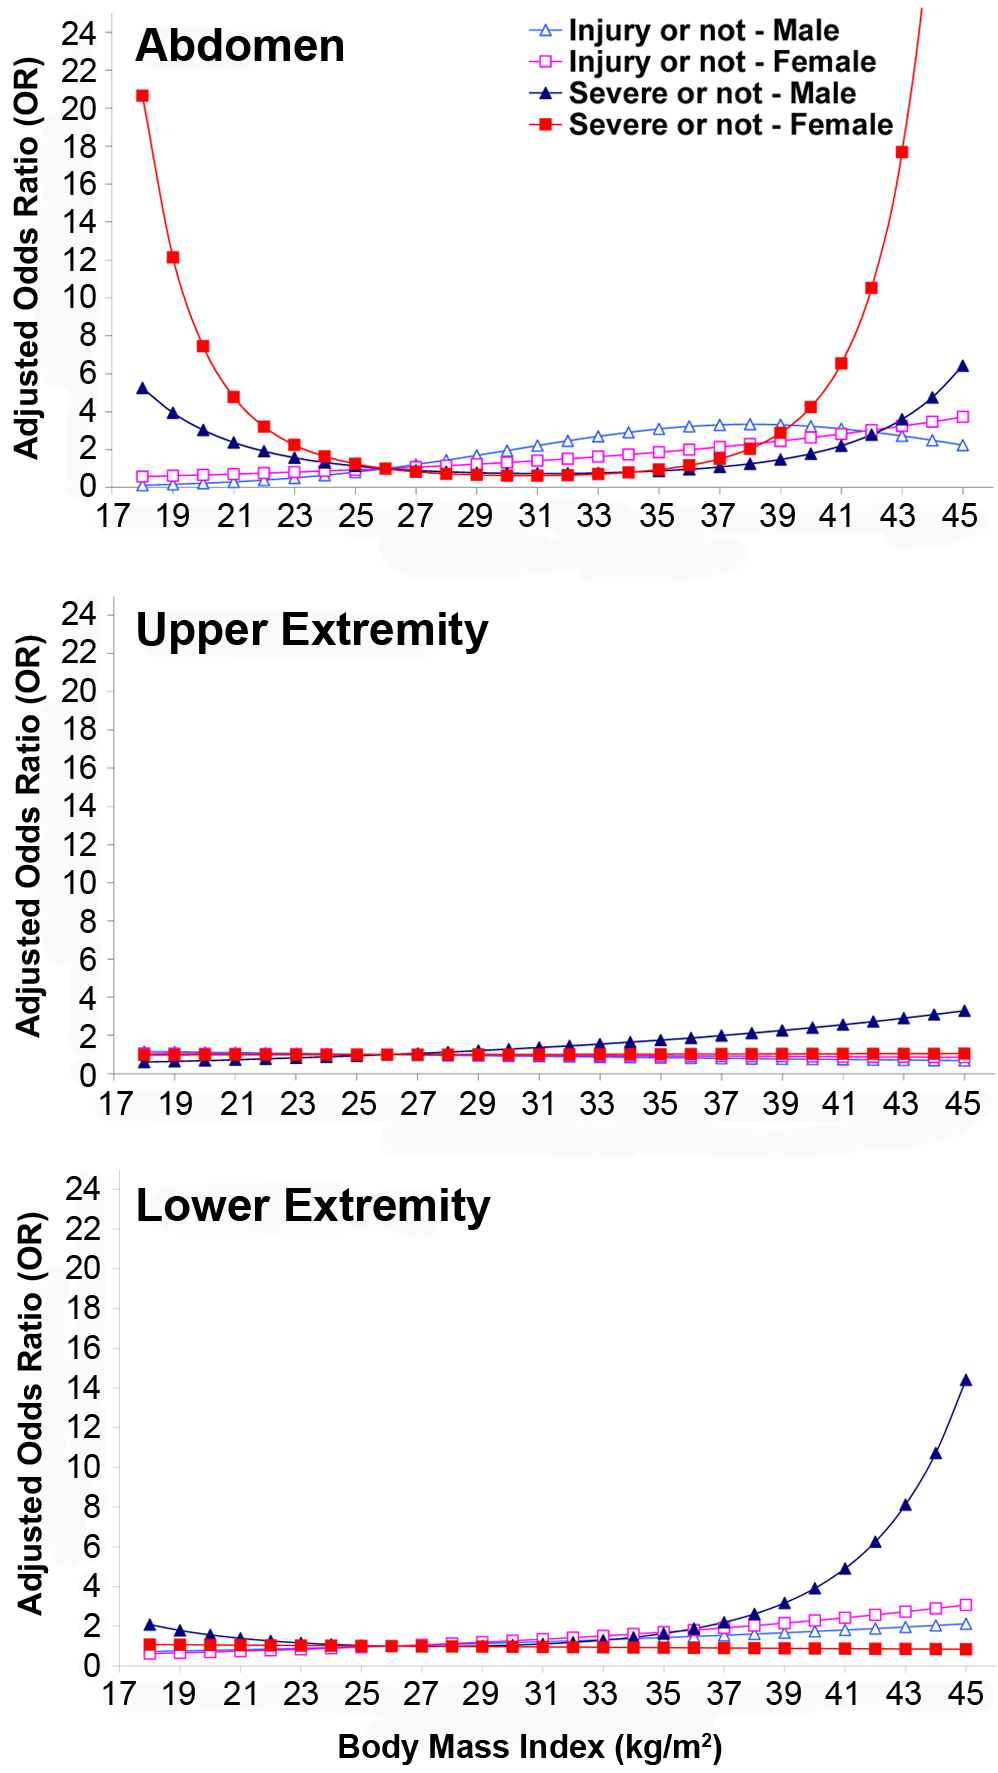 Adjusted OR for being injured or seriously injured by drivers' BMI and sex in the abdomen, upper extremity, and lower extremity.